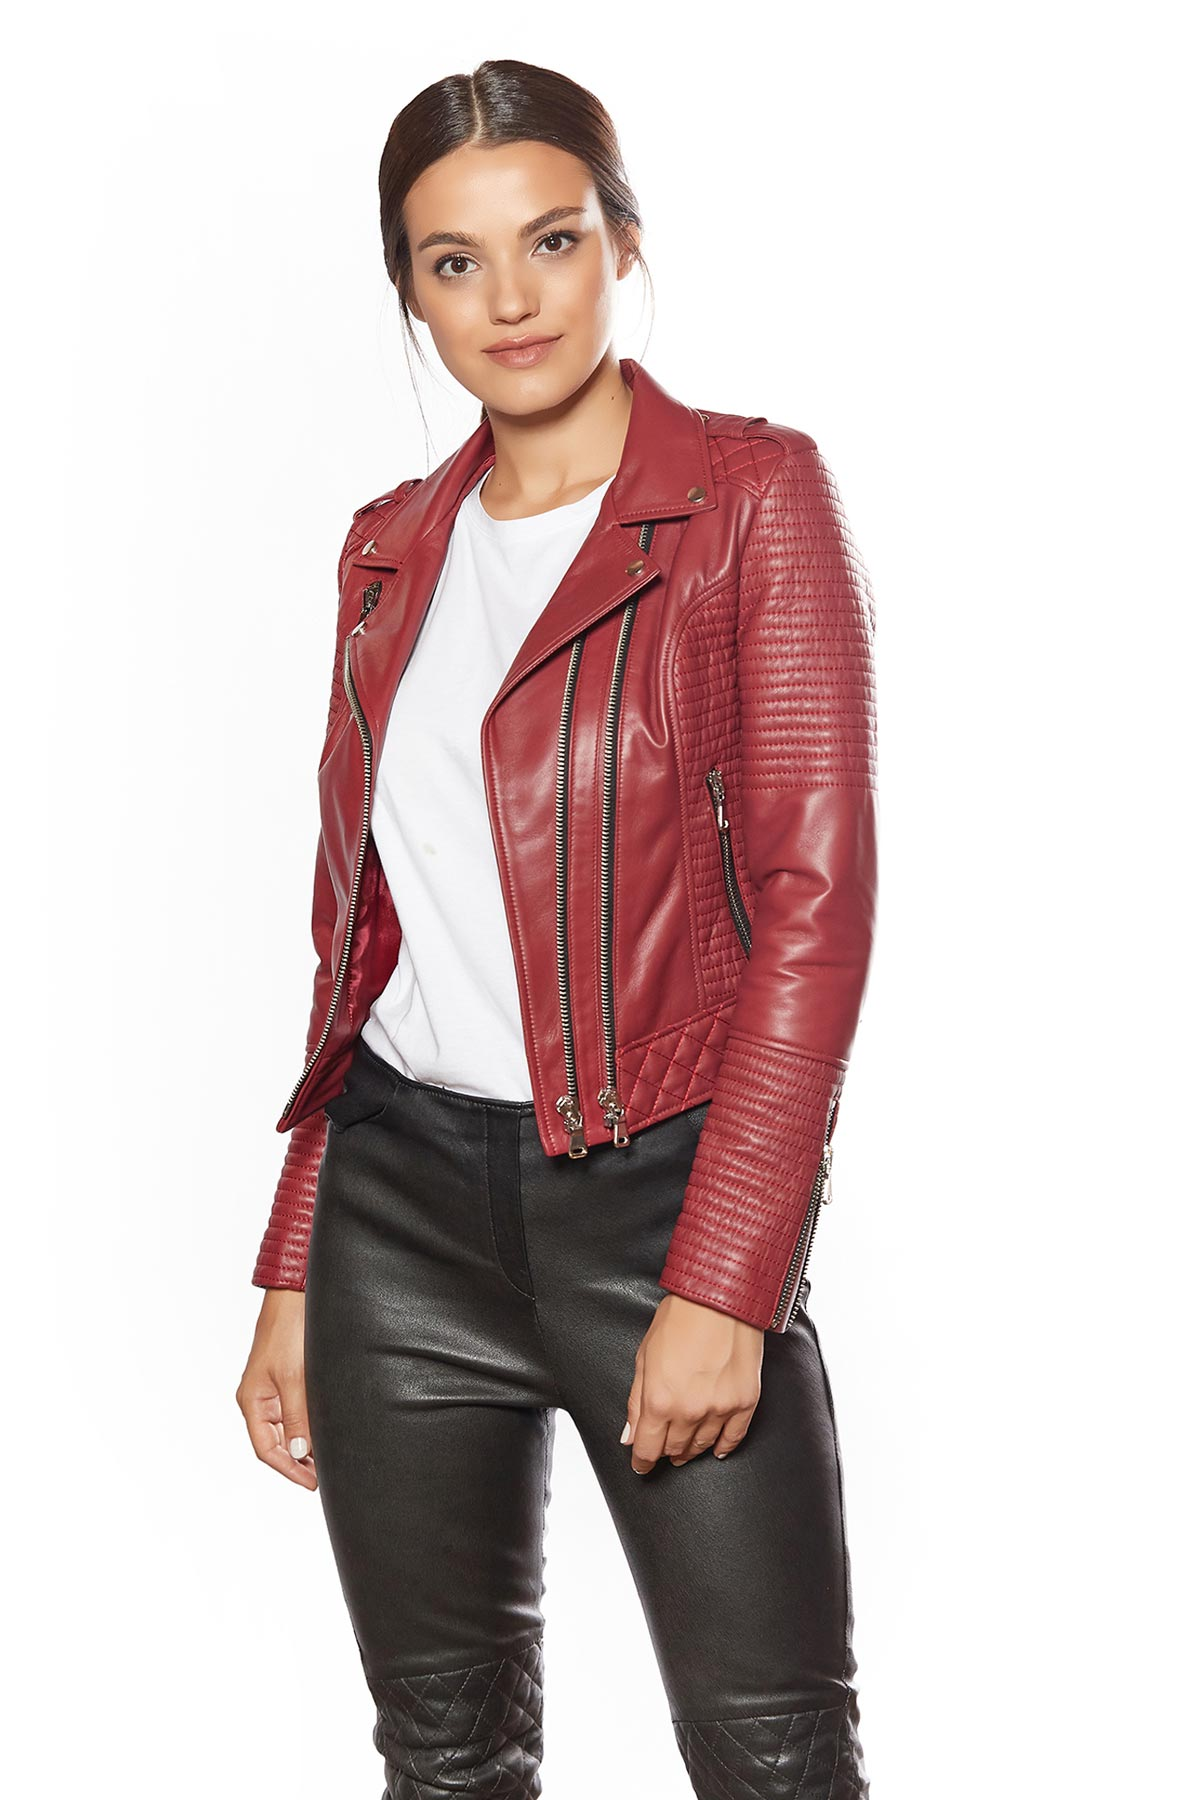 inexpensive leather jackets